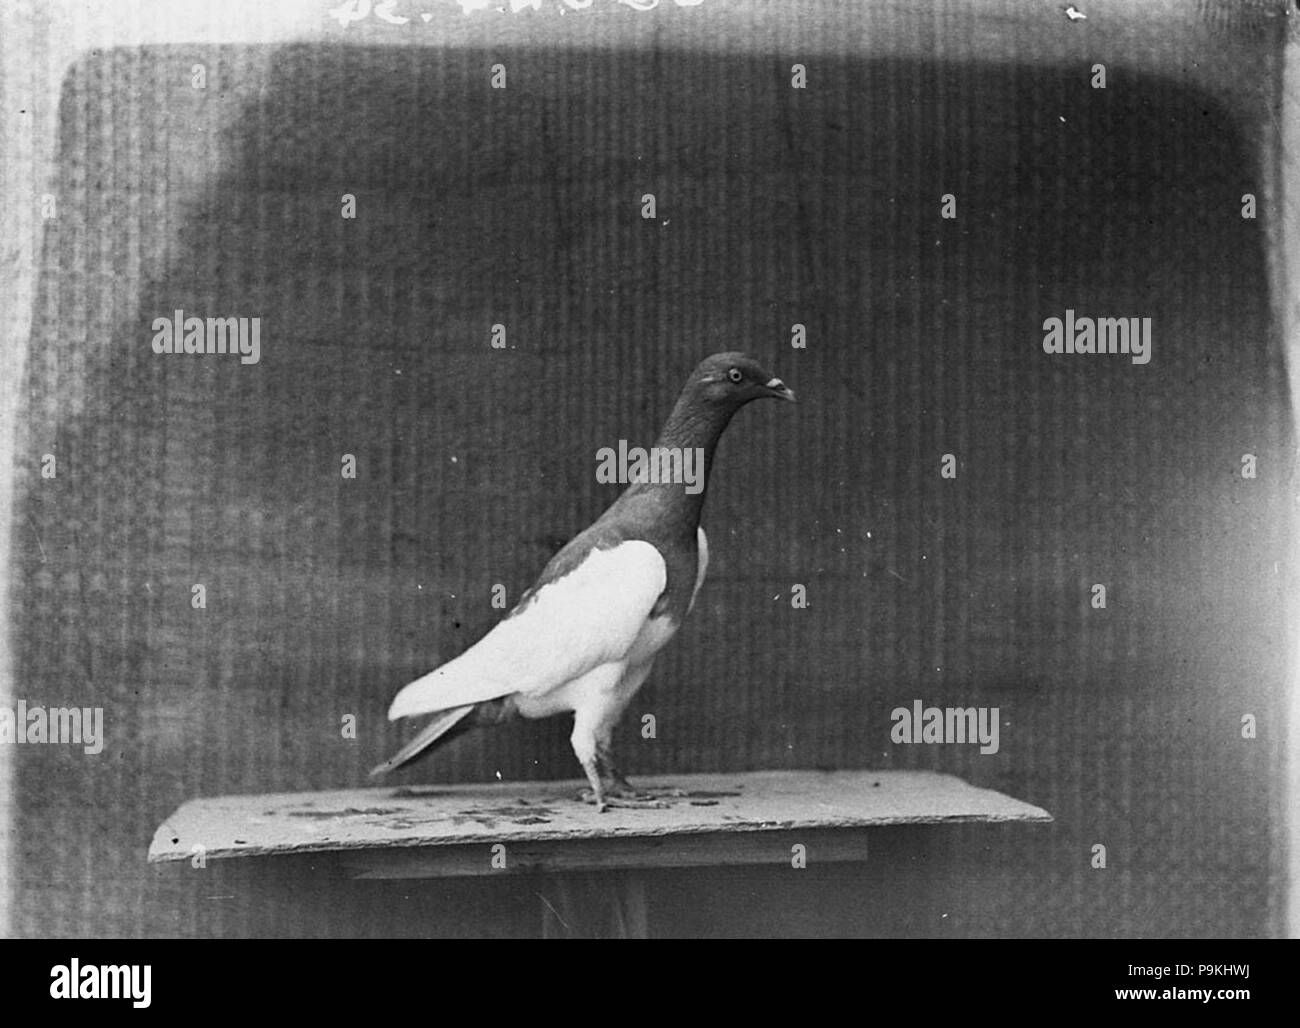 Racing Pigeon Black and White Stock Photos & Images - Alamy